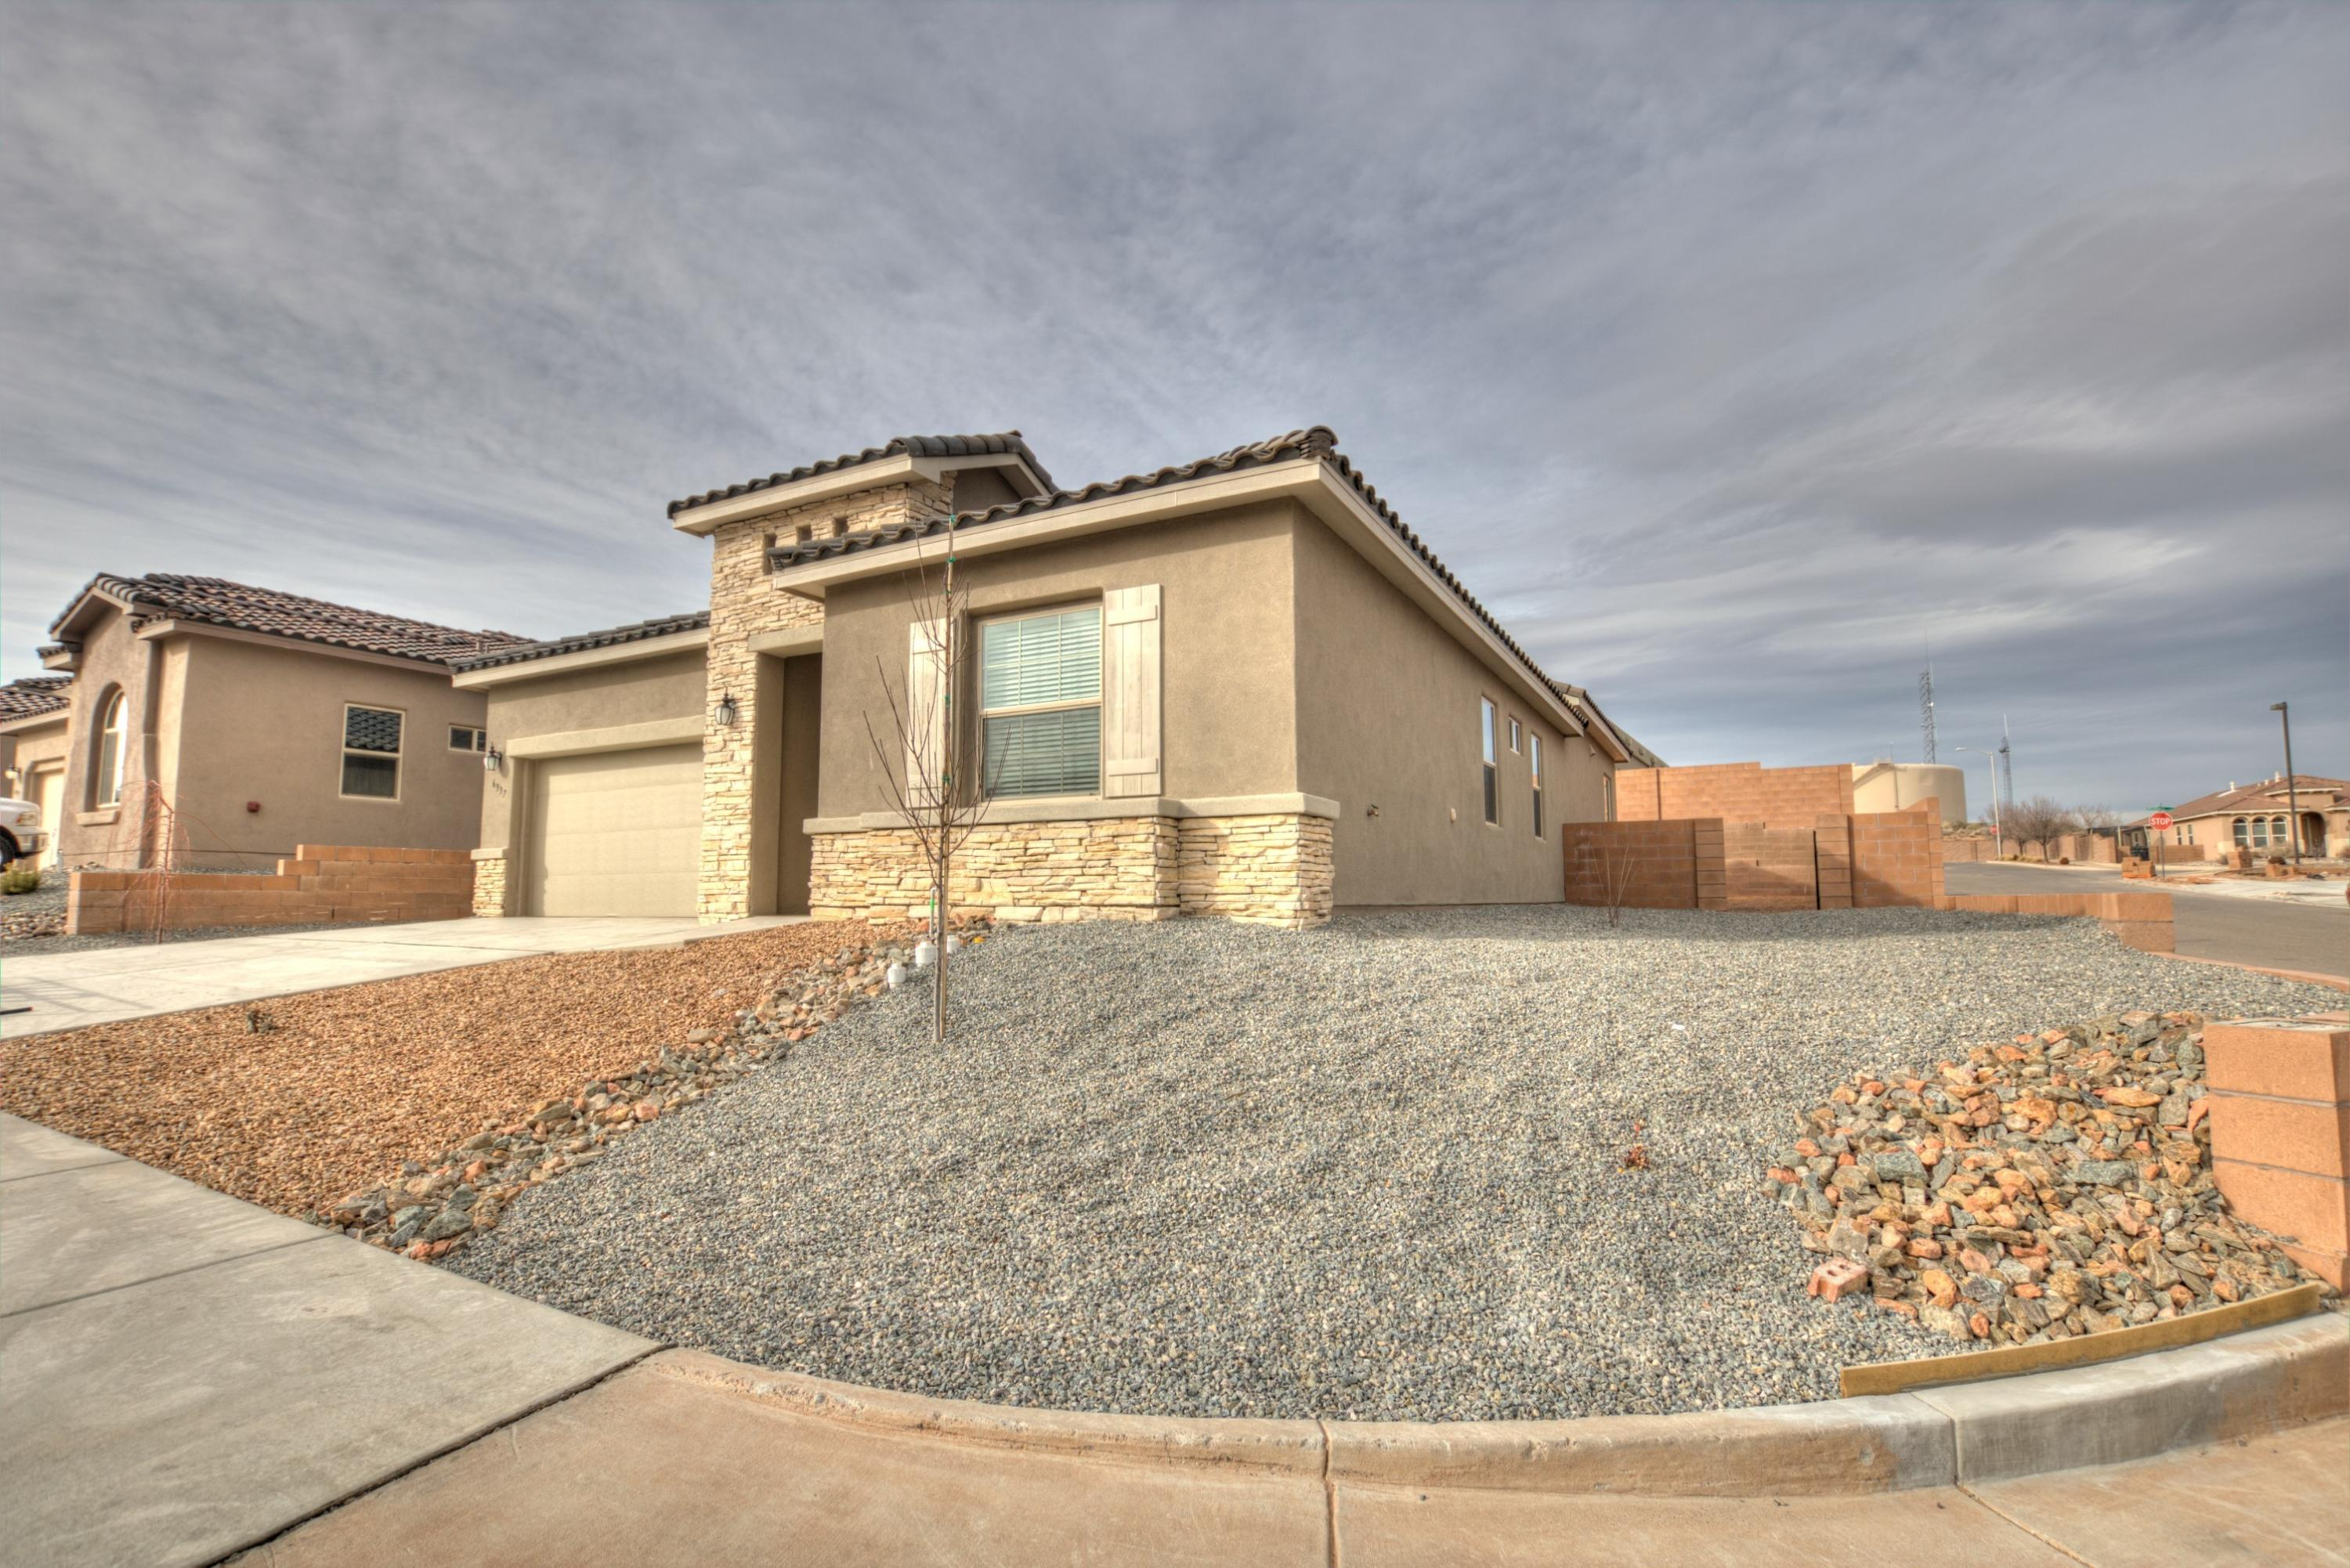 1920 sf MedEstimated completion: 05/18/20213 bedroom, 2.5 baths.  8' doors, gourmet kitchen, farm sink, upgraded tile; granite countertops in kitchen (PHOTOS ARE NOT OF ACTUAL HOME BUT REPRESENT THE FLOOR PLAN)